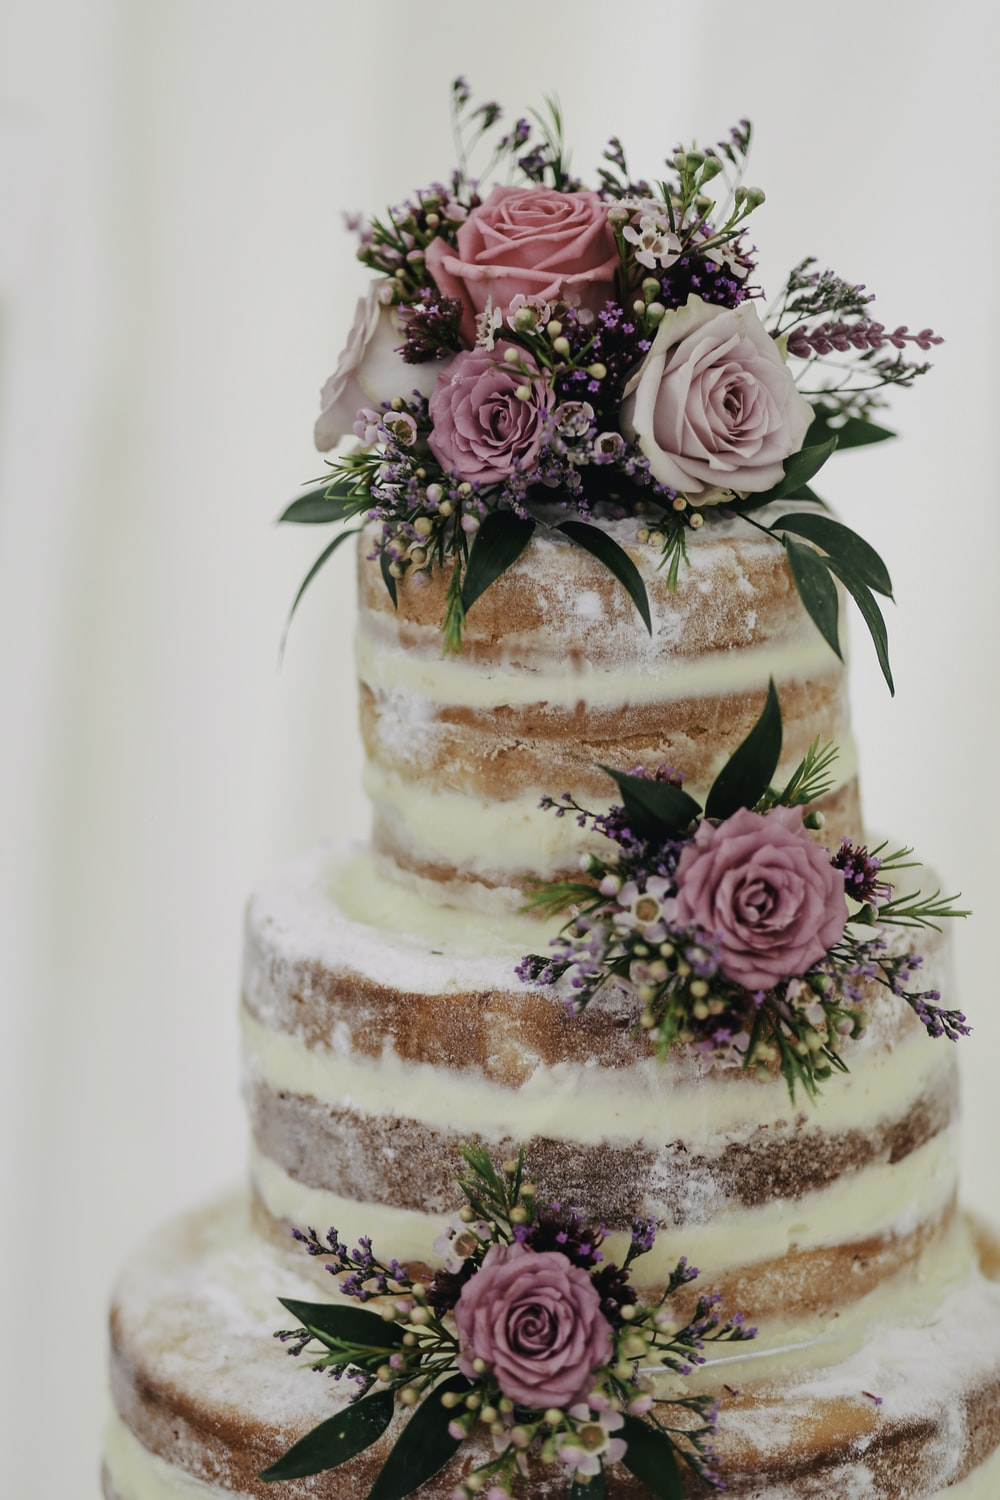 3-layer cake with flowers accent